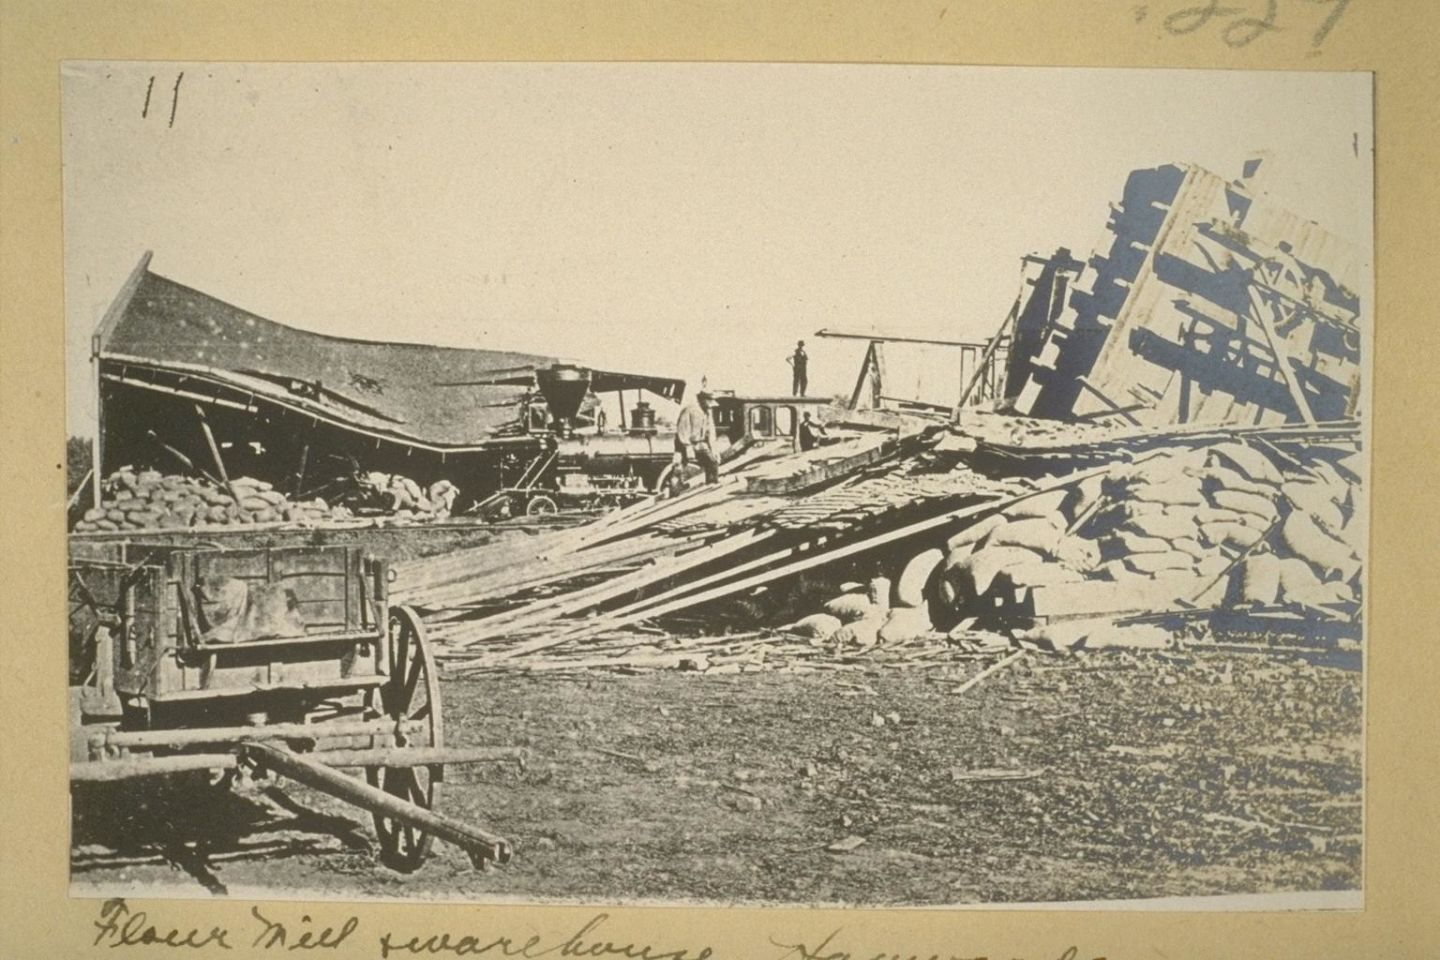 A flour mill destroyed by an earthquake on the Hayward Fault on October 21, 1868.